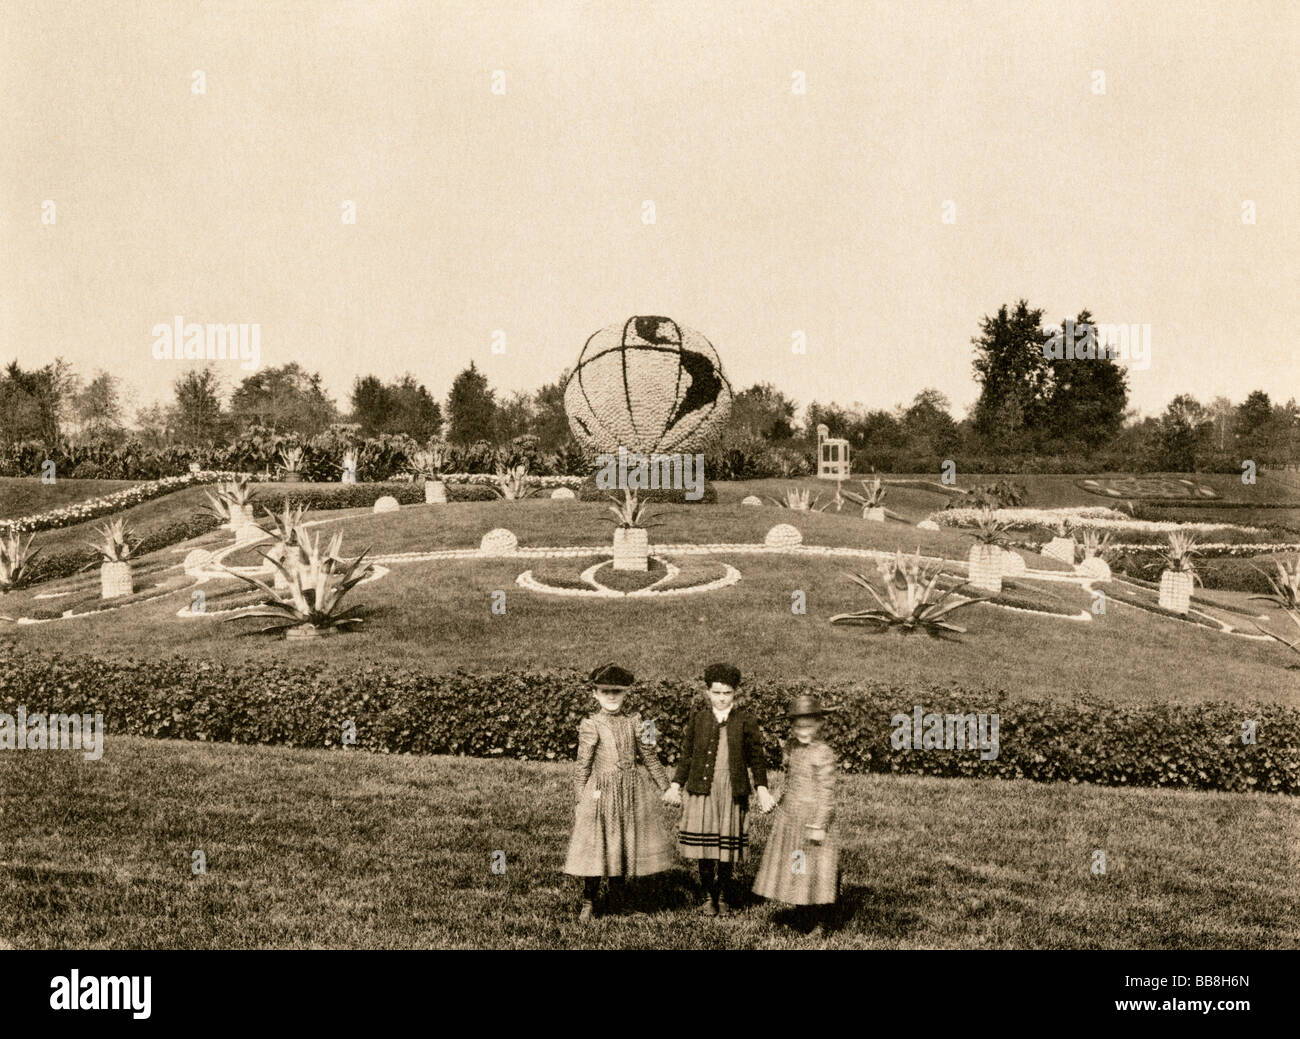 Flower-covered globe in Washington Park for the Columbian Exposition Chicago 1893. Albertype (photograph) - Stock Image